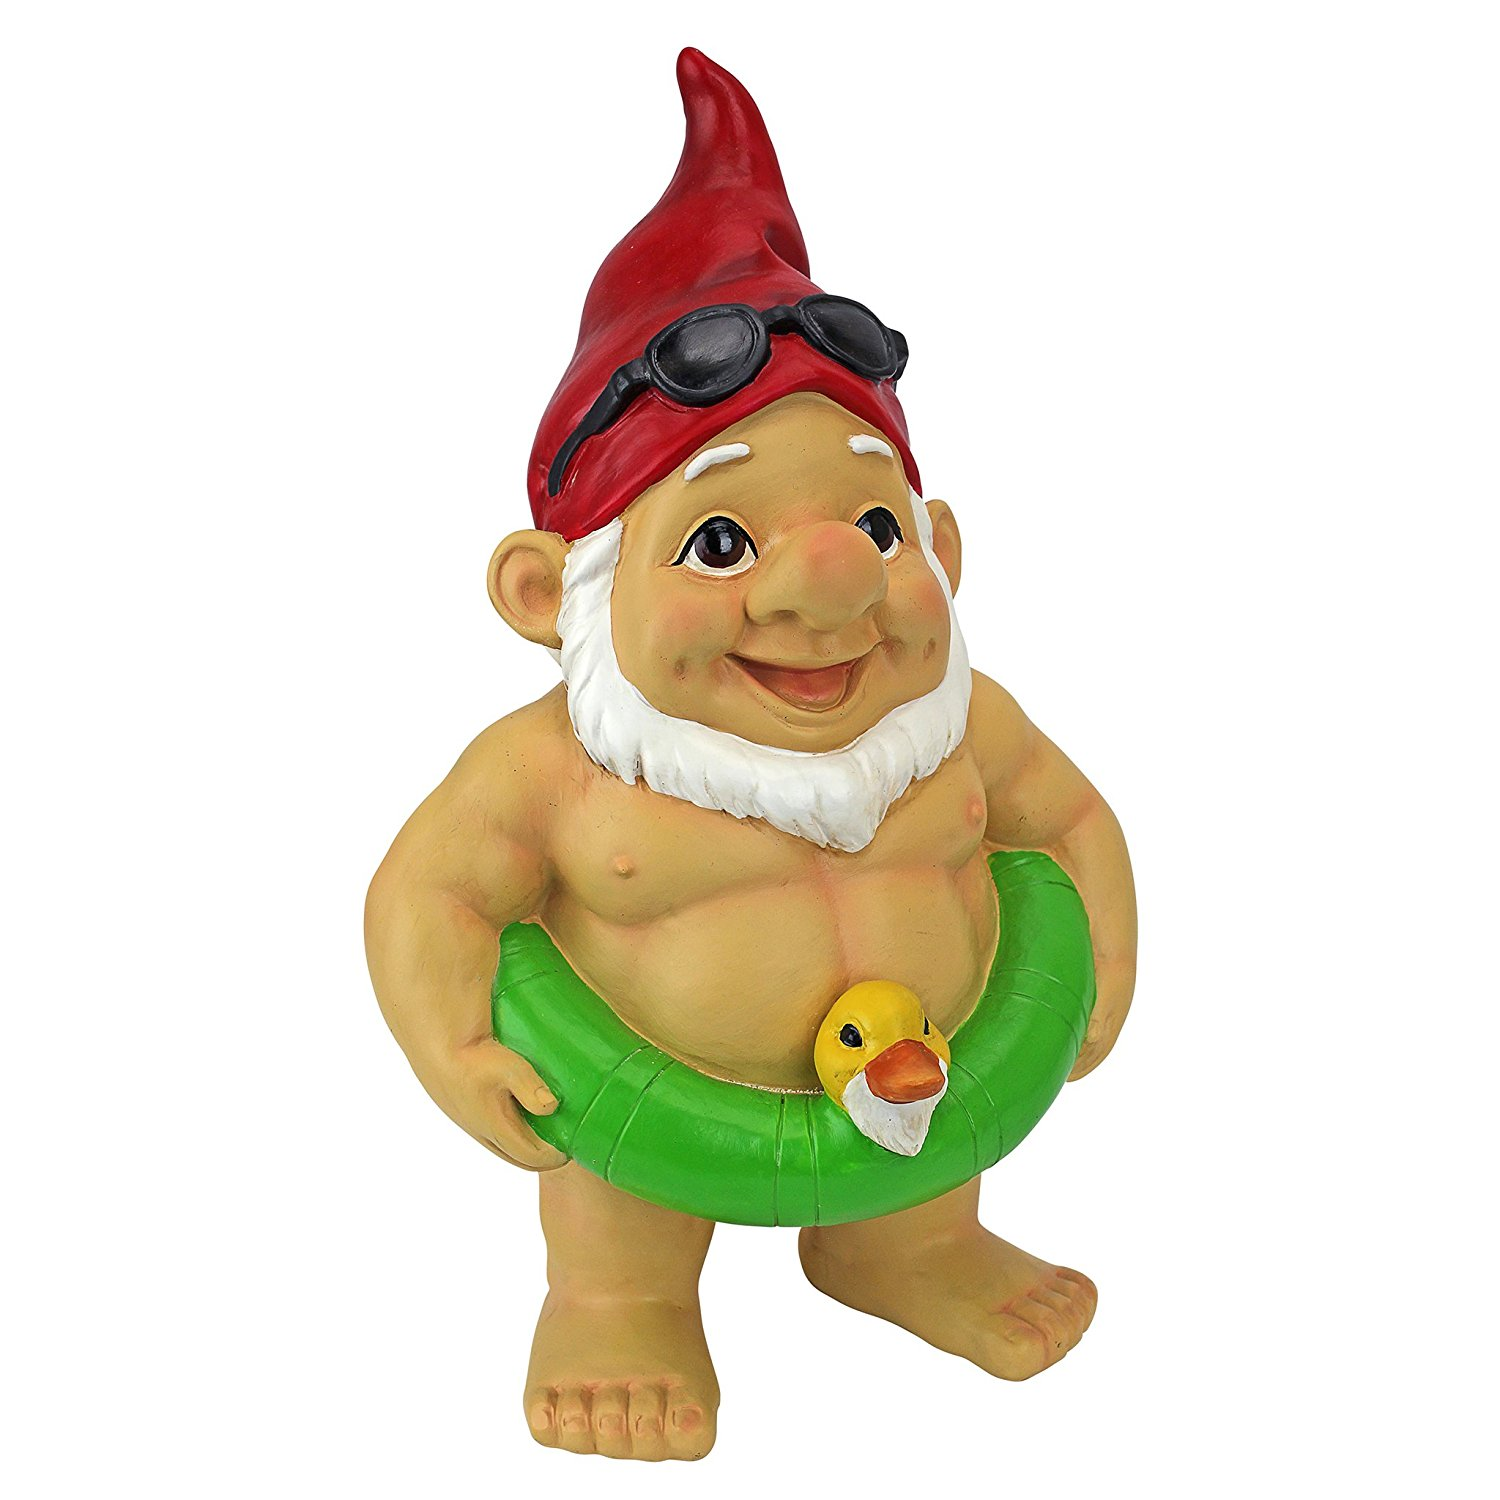 Garden Gnome Statue - Pool Party Pete Naked Gnome - Outdoor Garden Gnomes - Funny Lawn Gnome Statues